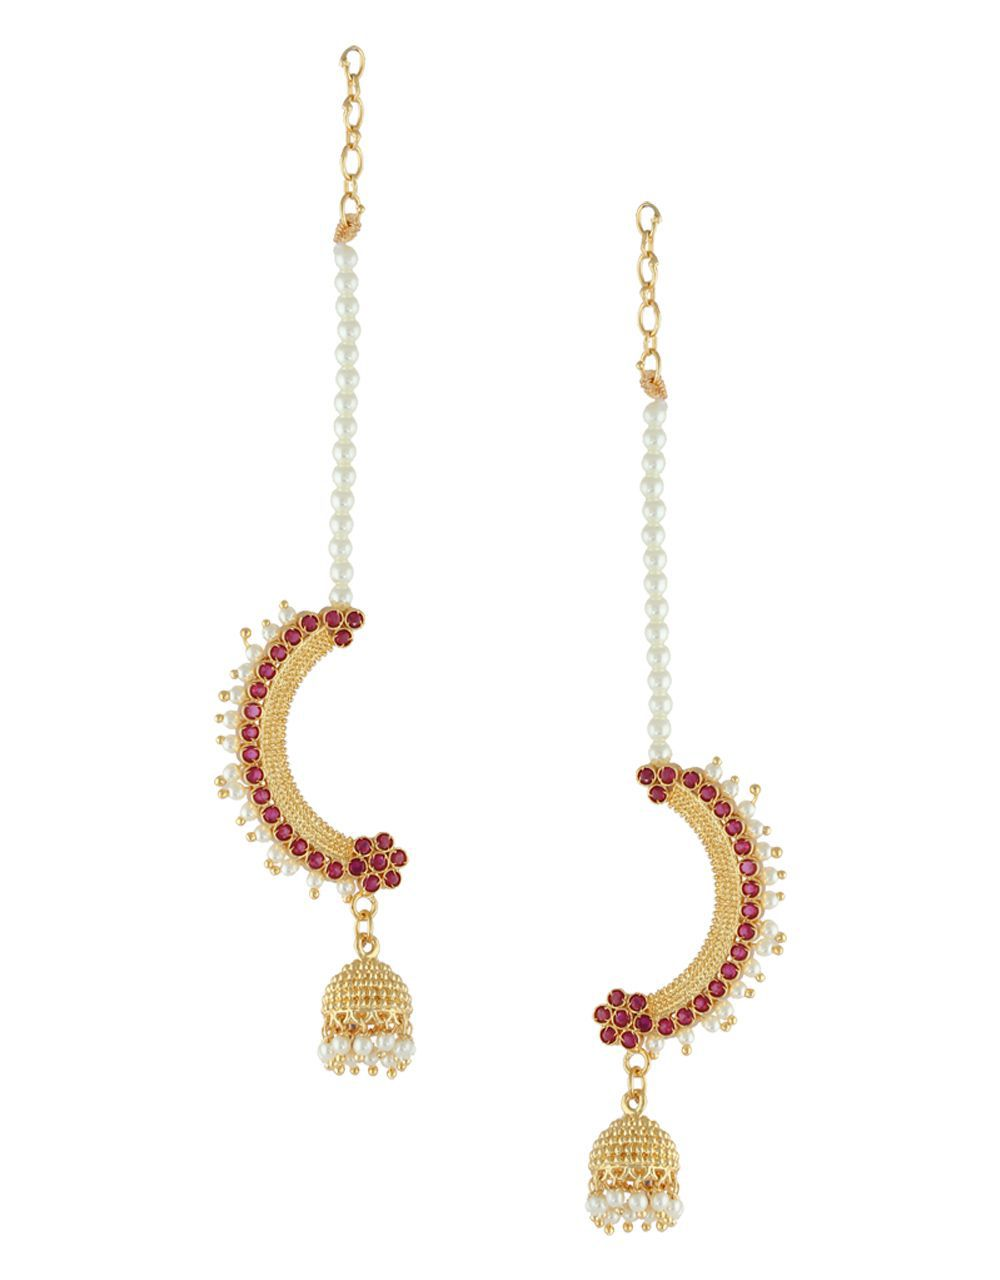 Anuradha Art Golden Finish Wonderful Studded With Stone Designer Traditional Jhumka/Jhumki Earrings For Women/Girls